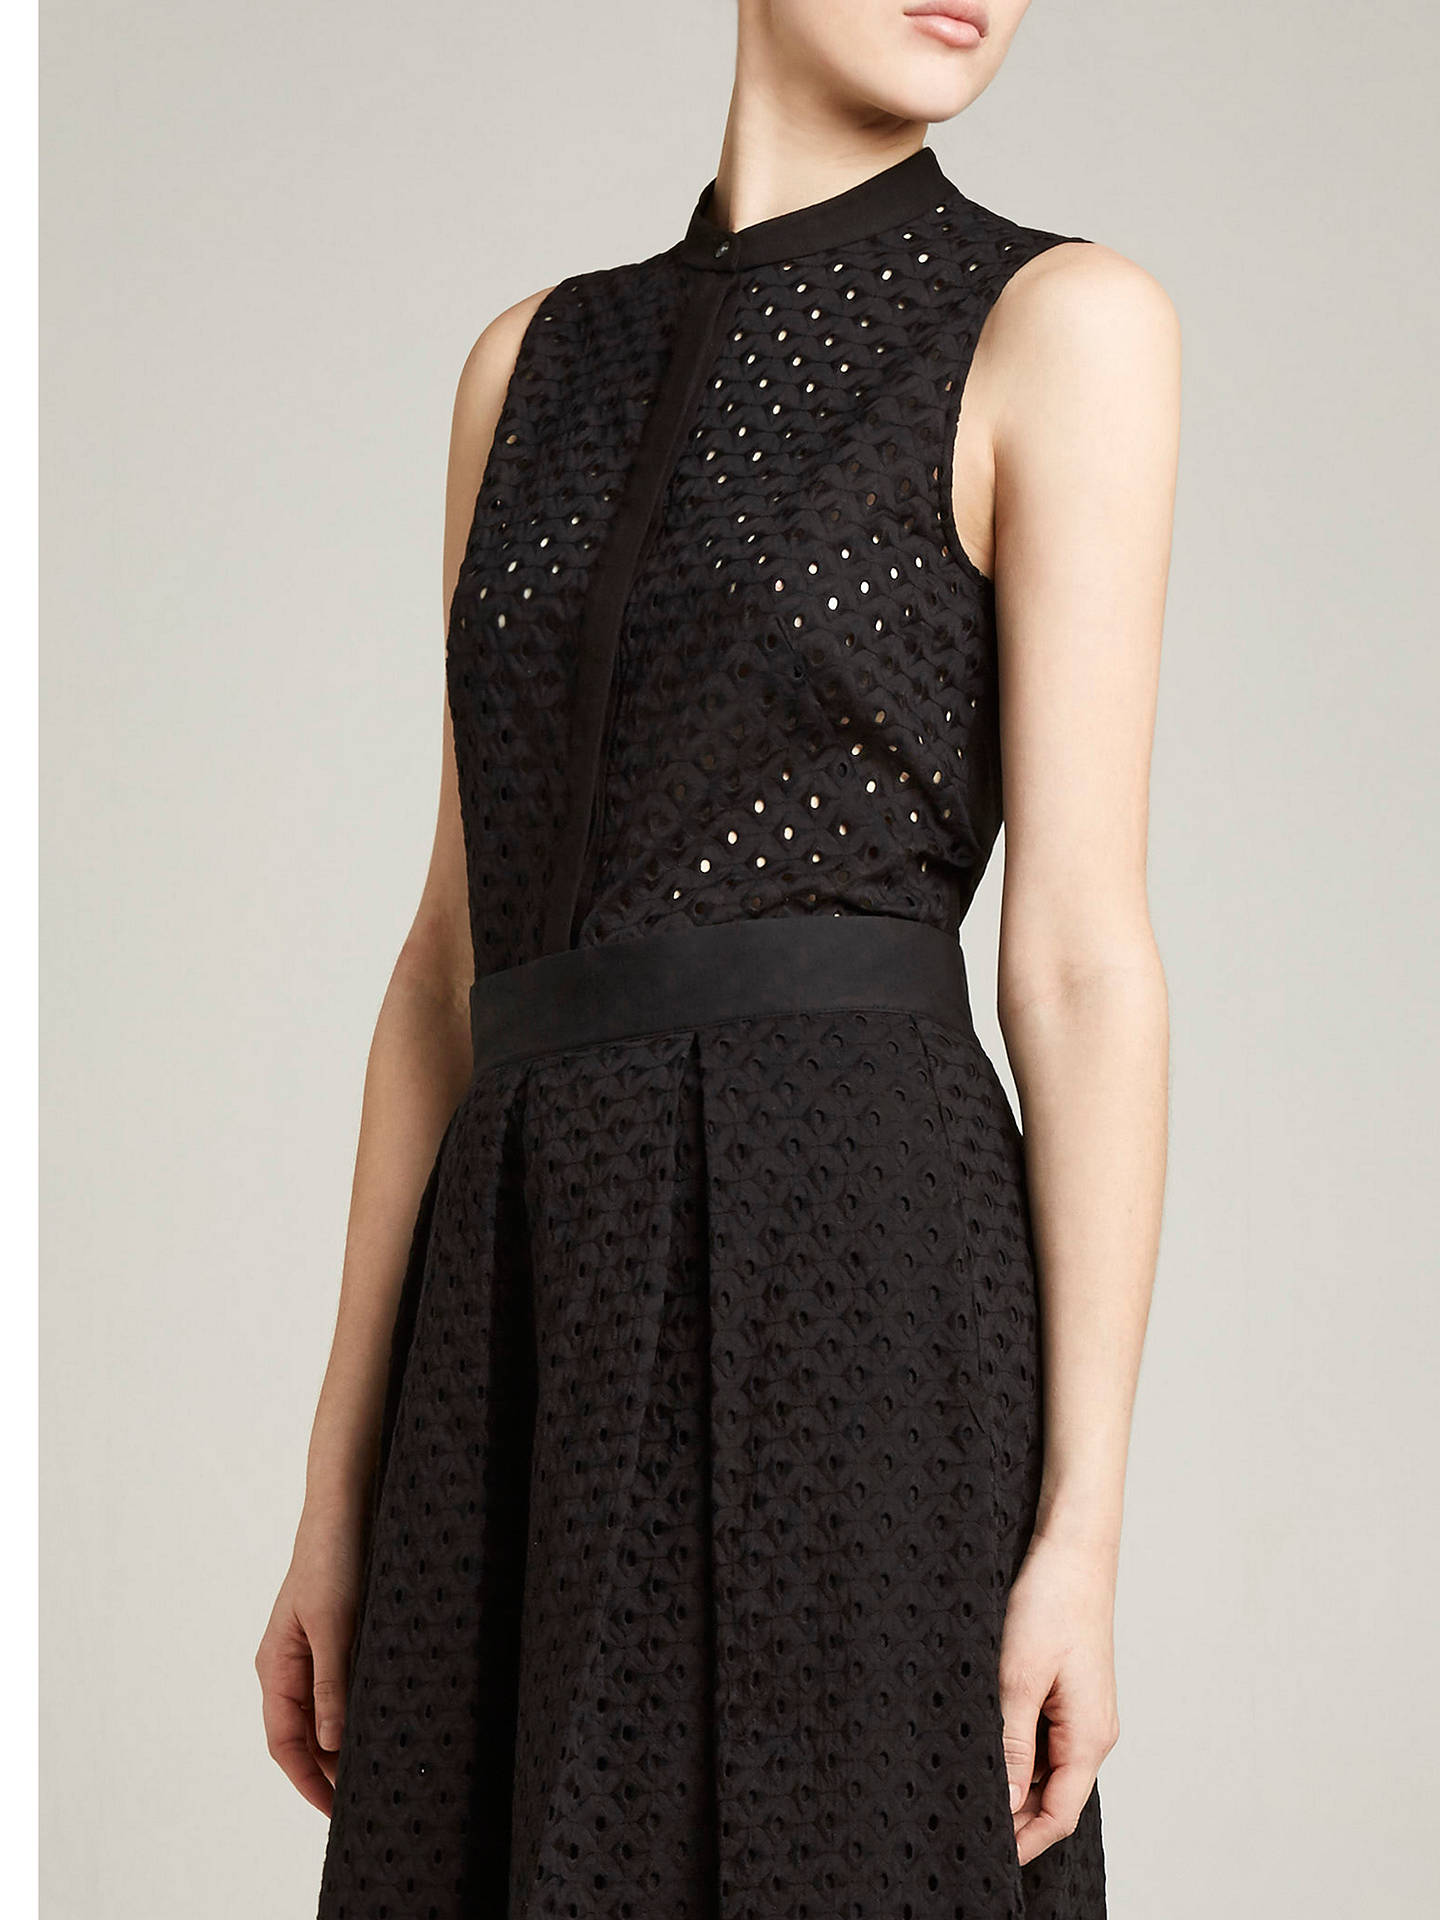 dca1e140c Buy Winser London Broderie Anglaise Top, Black, 8 Online at johnlewis.com  ...